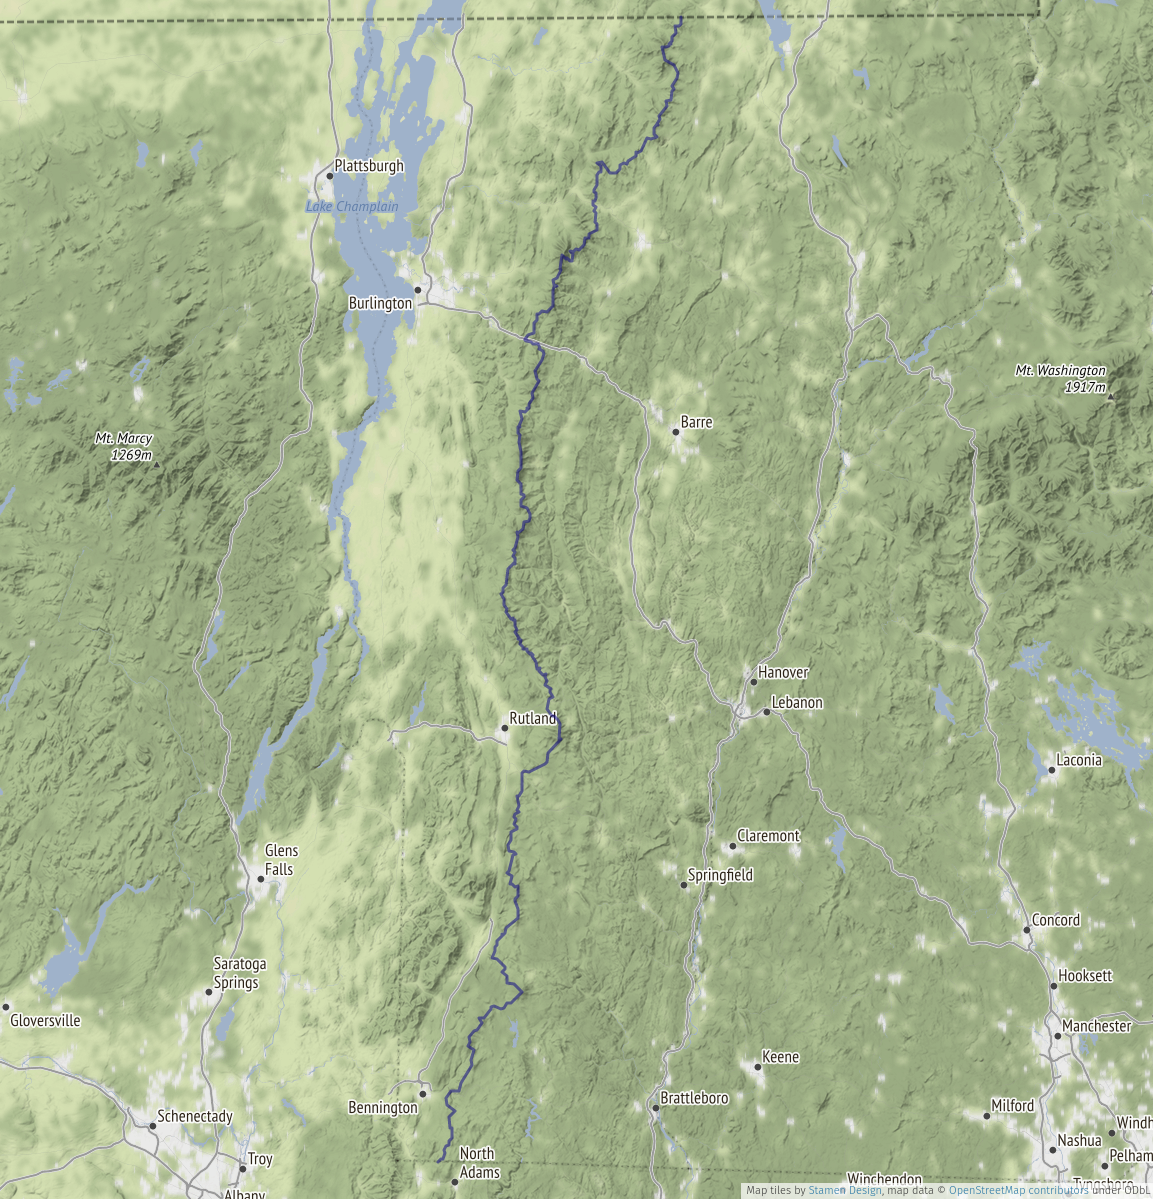 Entire Long Trail route exported from OpenStreetMap and superimposed on a terrain map.